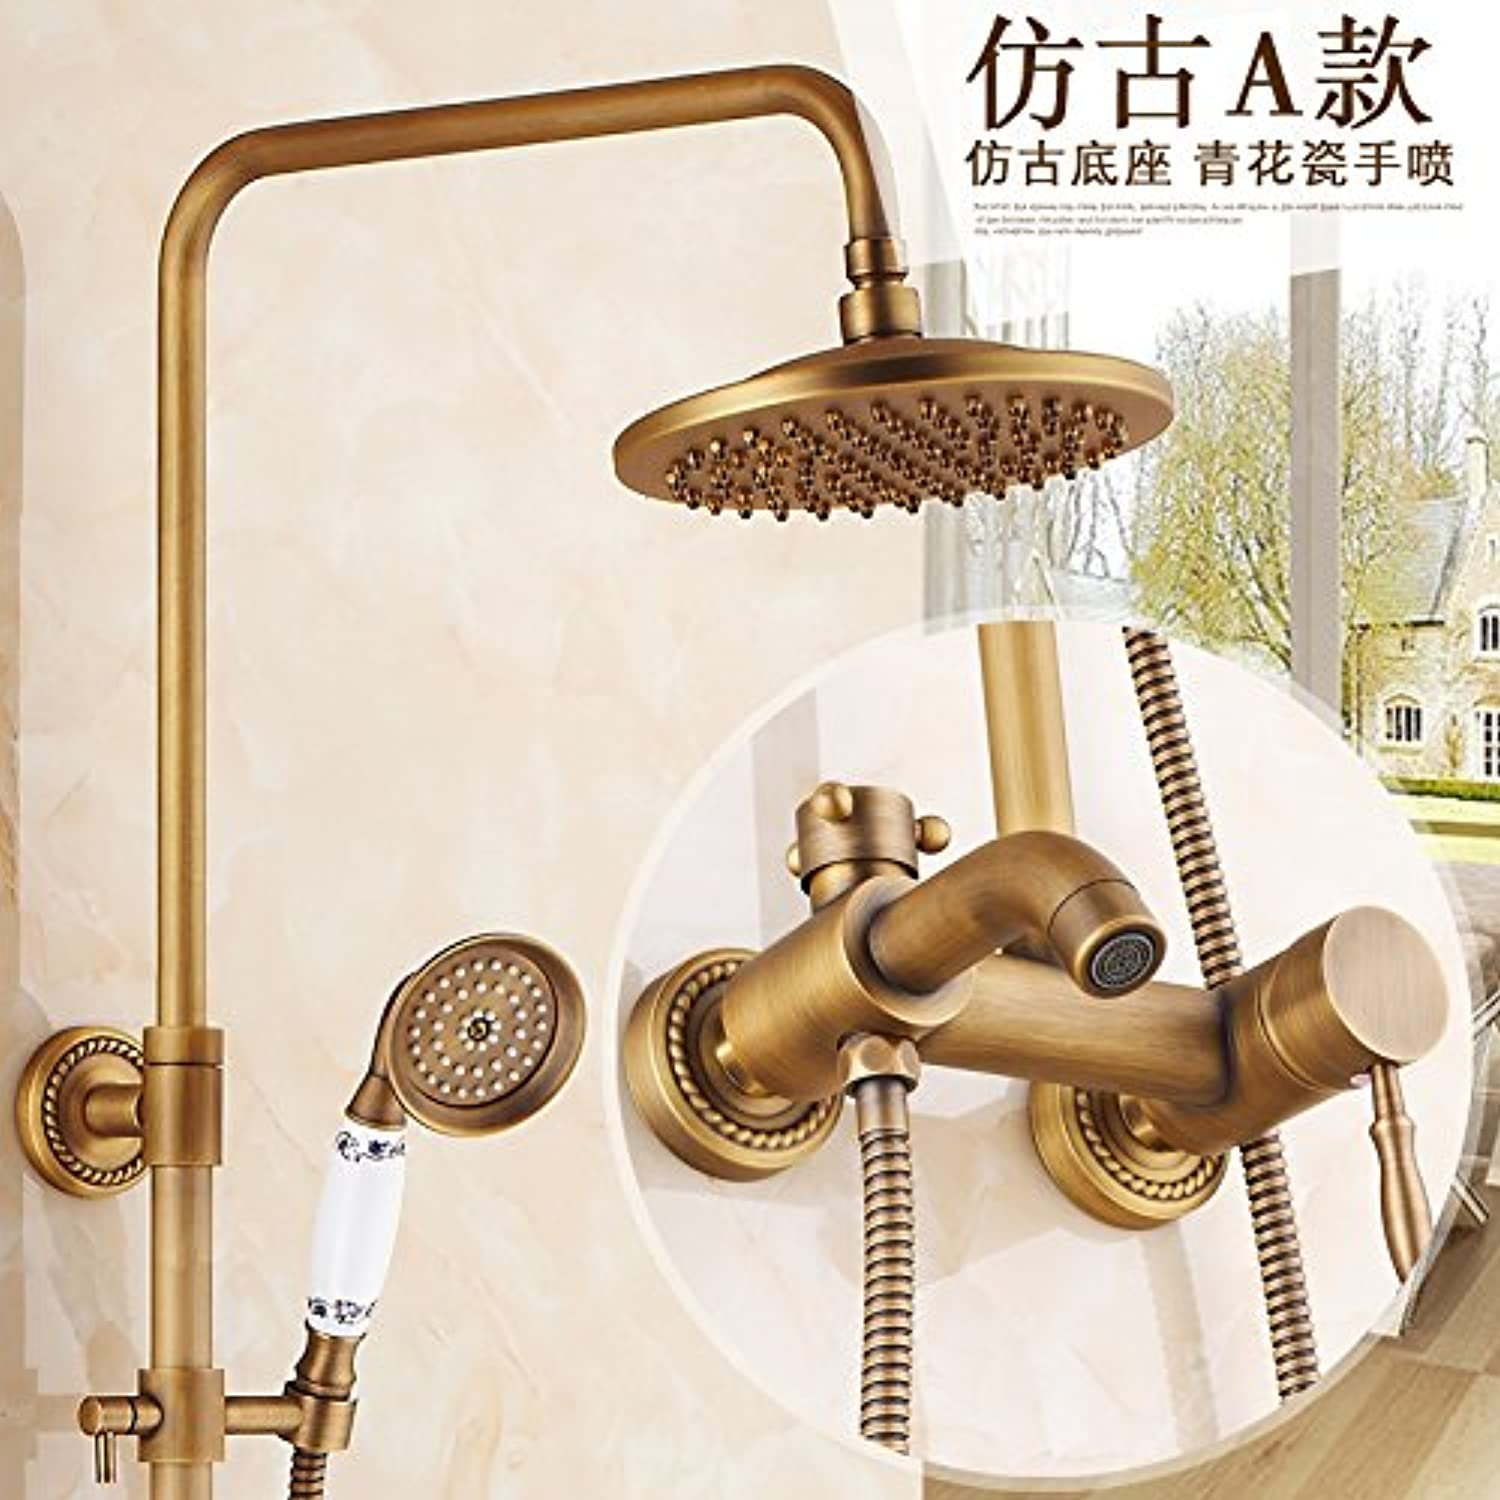 Hlluya Professional Sink Mixer Tap Kitchen Faucet Antique faucets full copper shower set bathroom shower with hot and cold running water taps, water faucet,